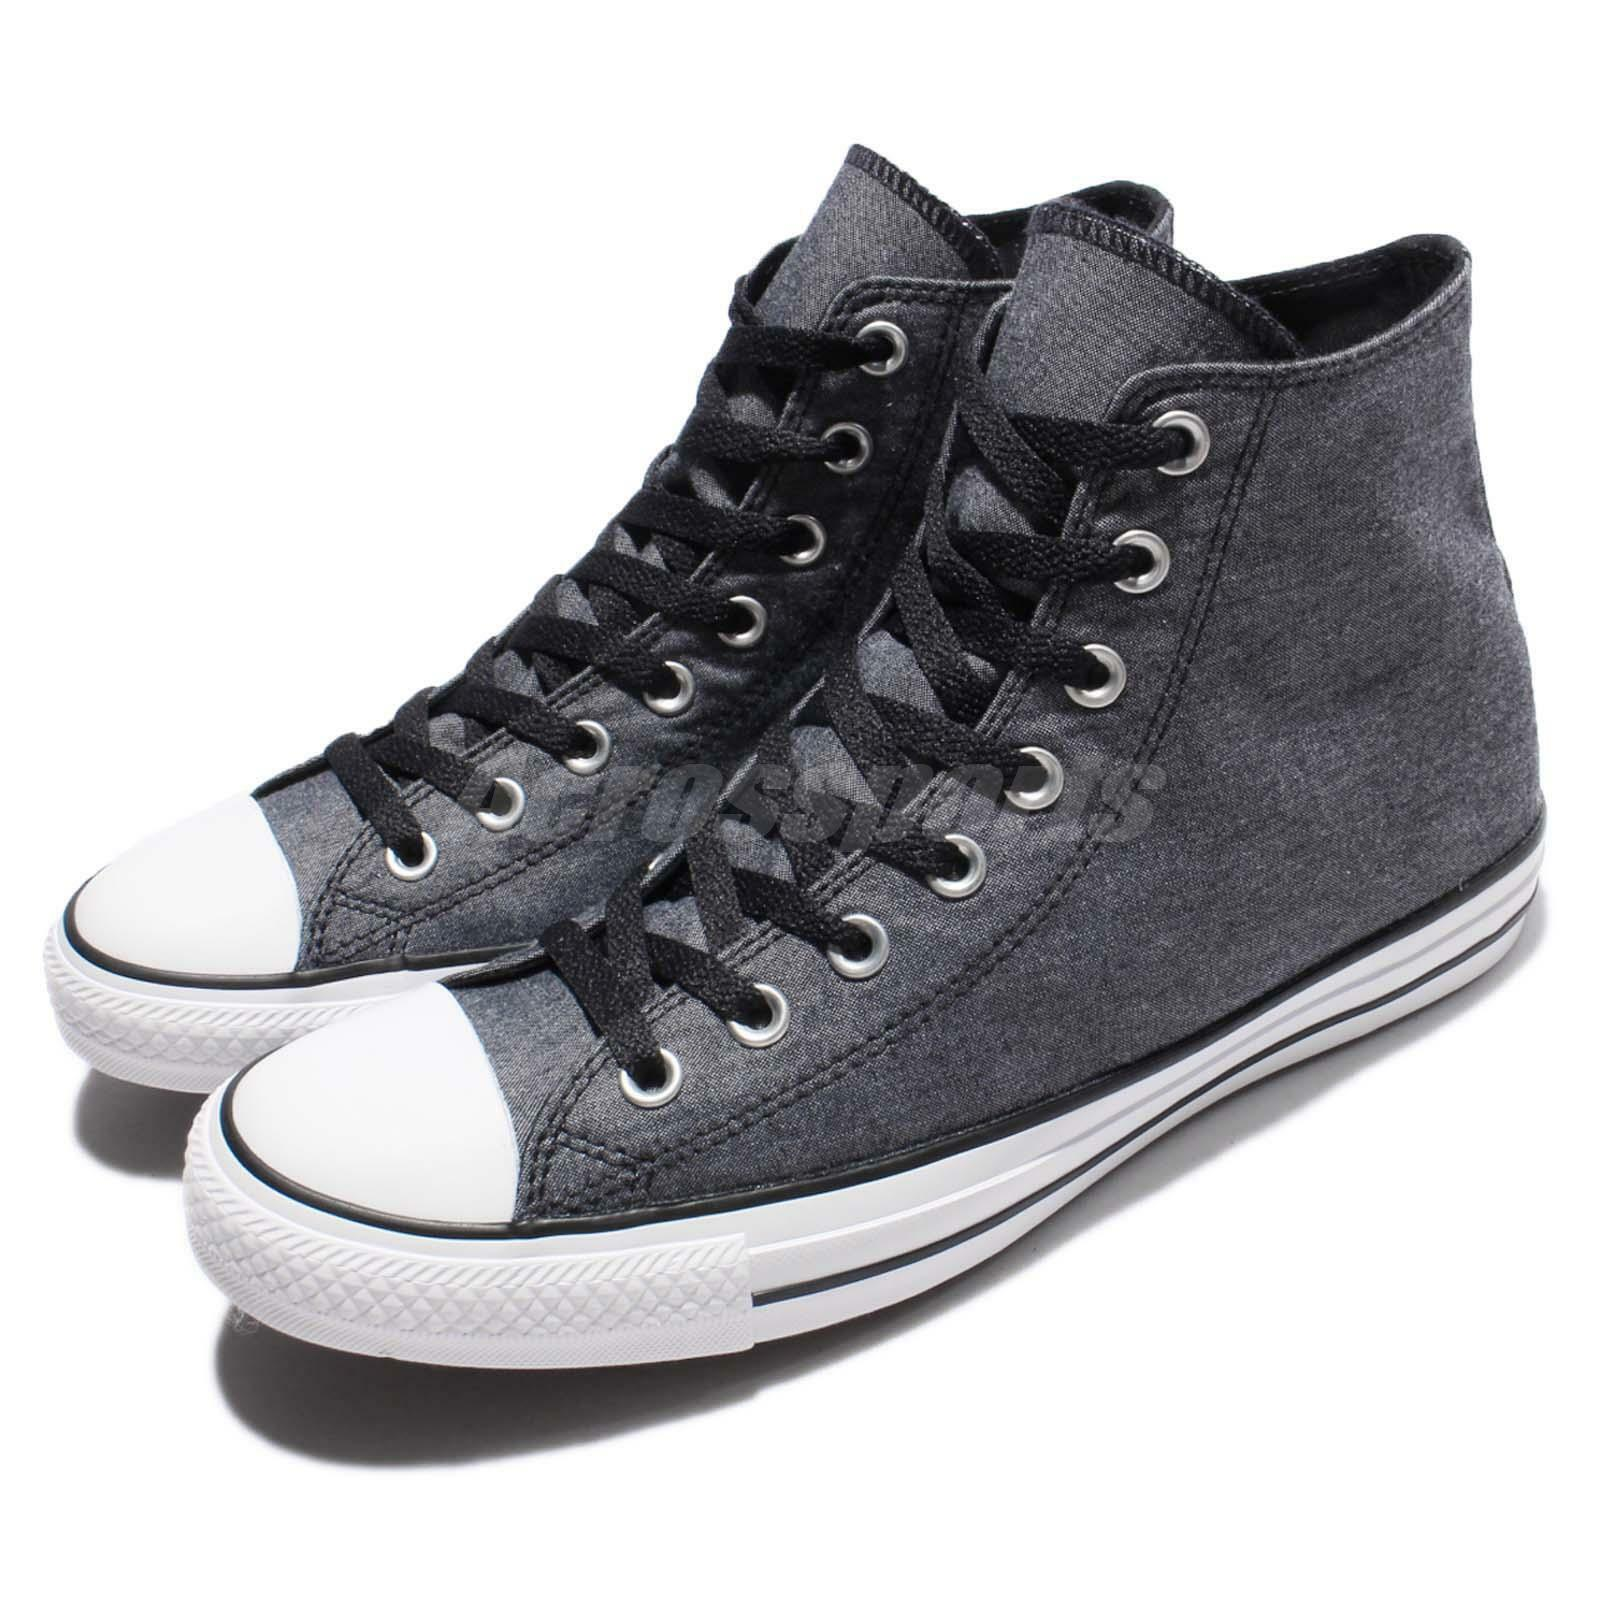 Converse Chuck Taylor All Star Grey White Men Casual Shoes Sneakers 155386C